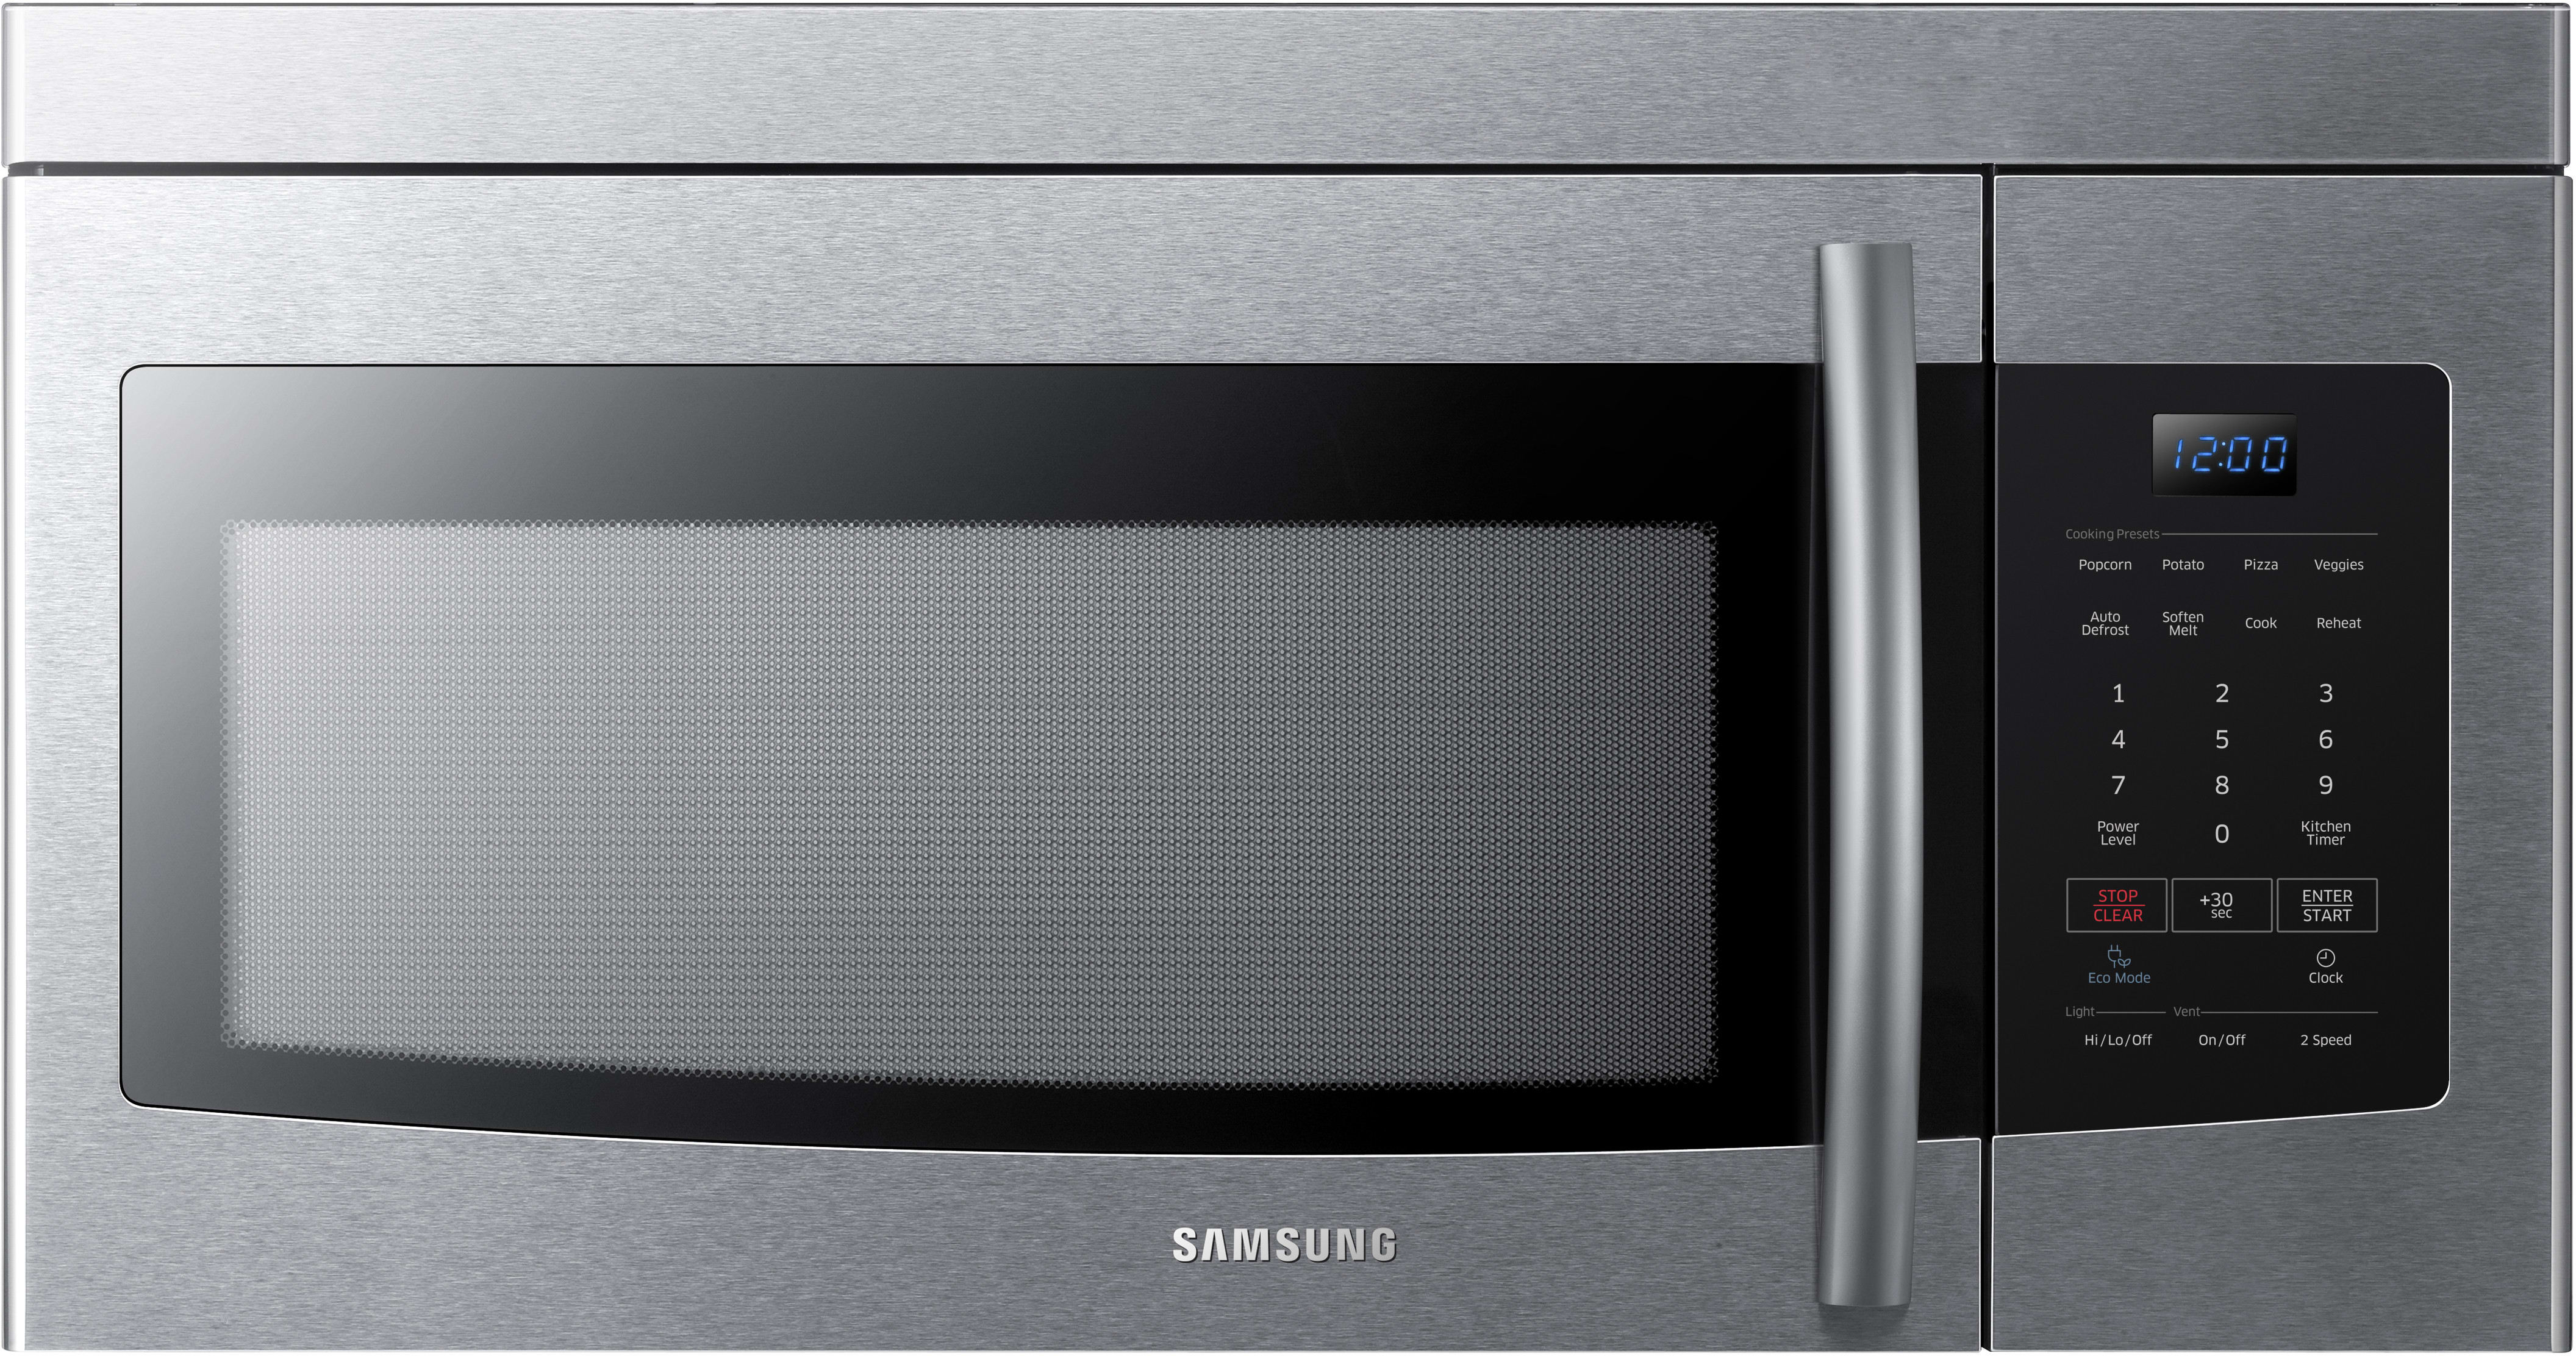 Samsung Me16k3000as 1 6 Cu Ft Over The Range Microwave